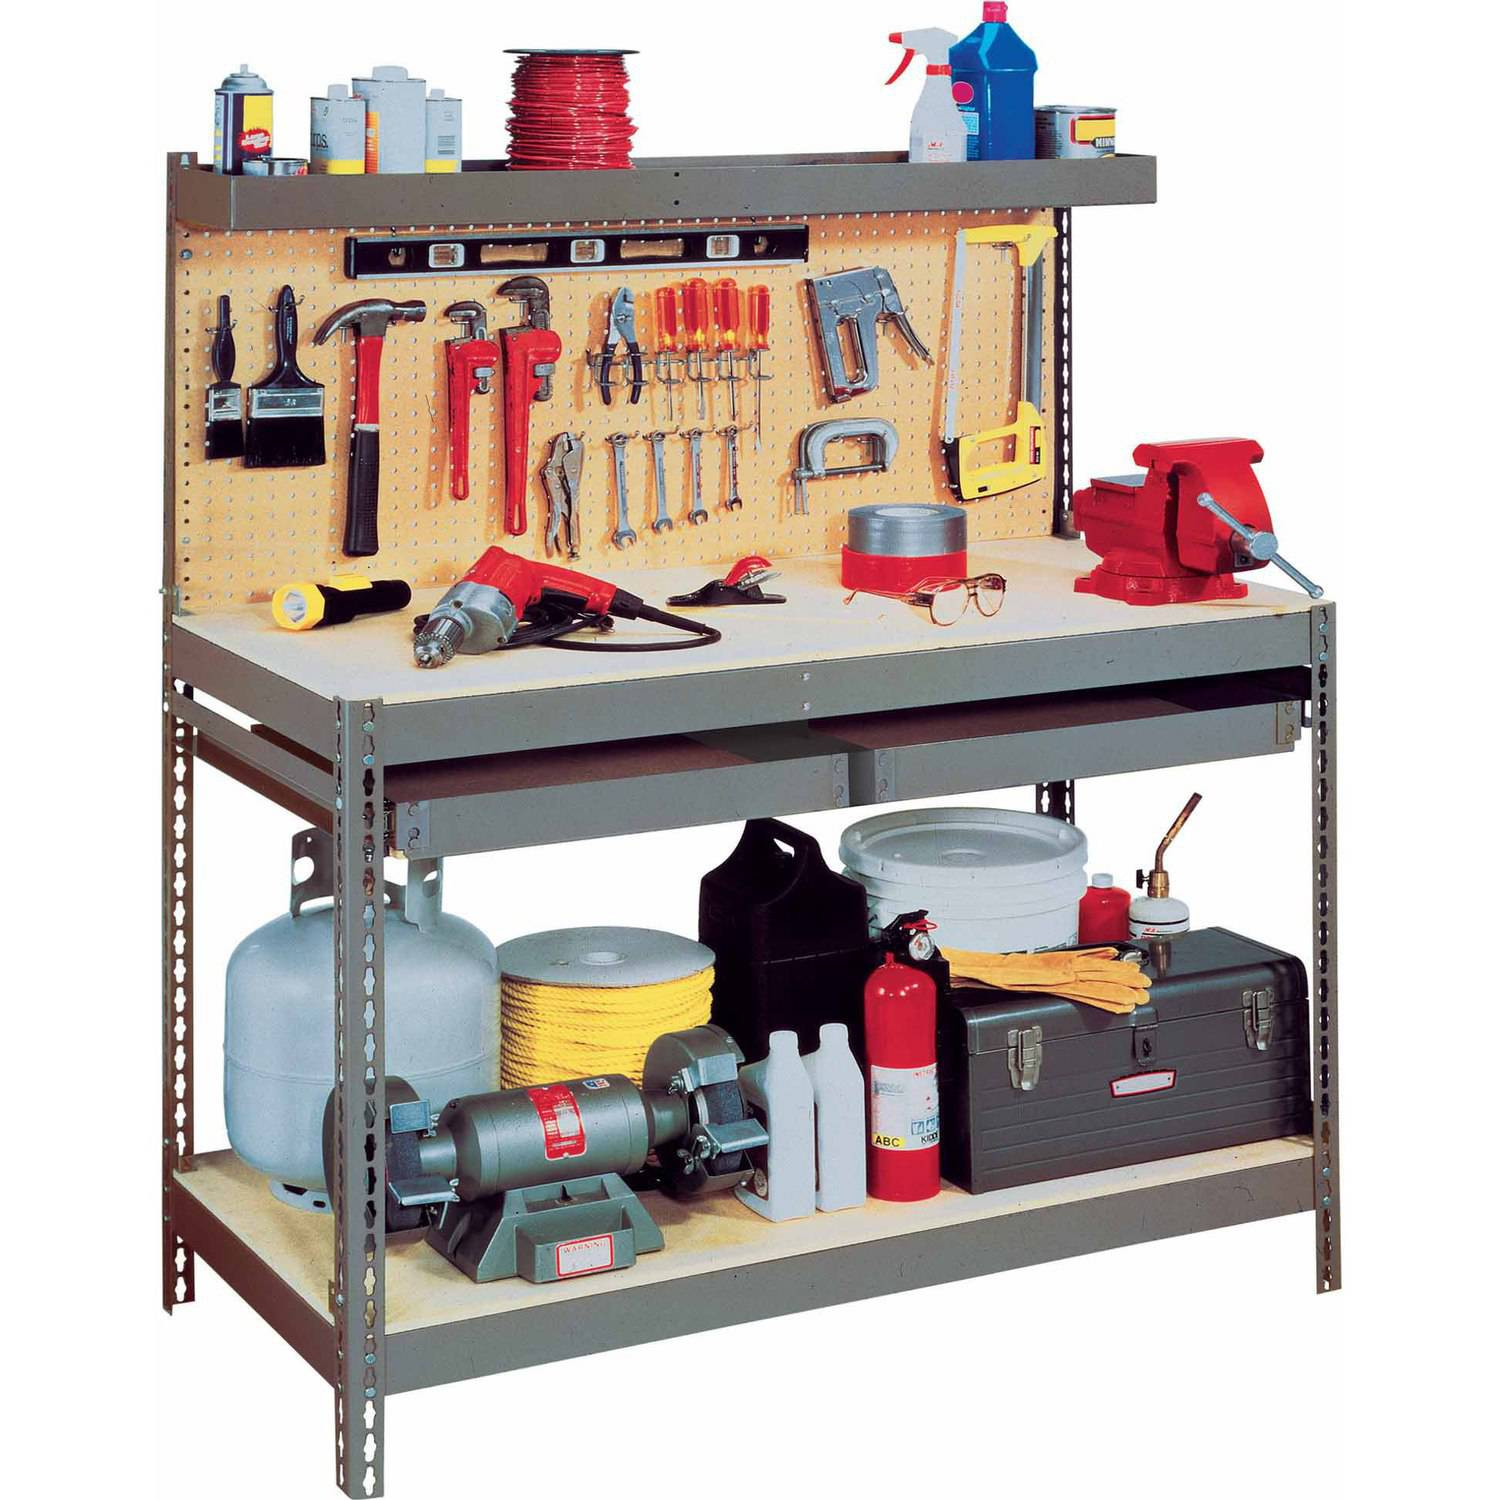 Edsal Heavy-Duty Steel Workbench, MRWB-6